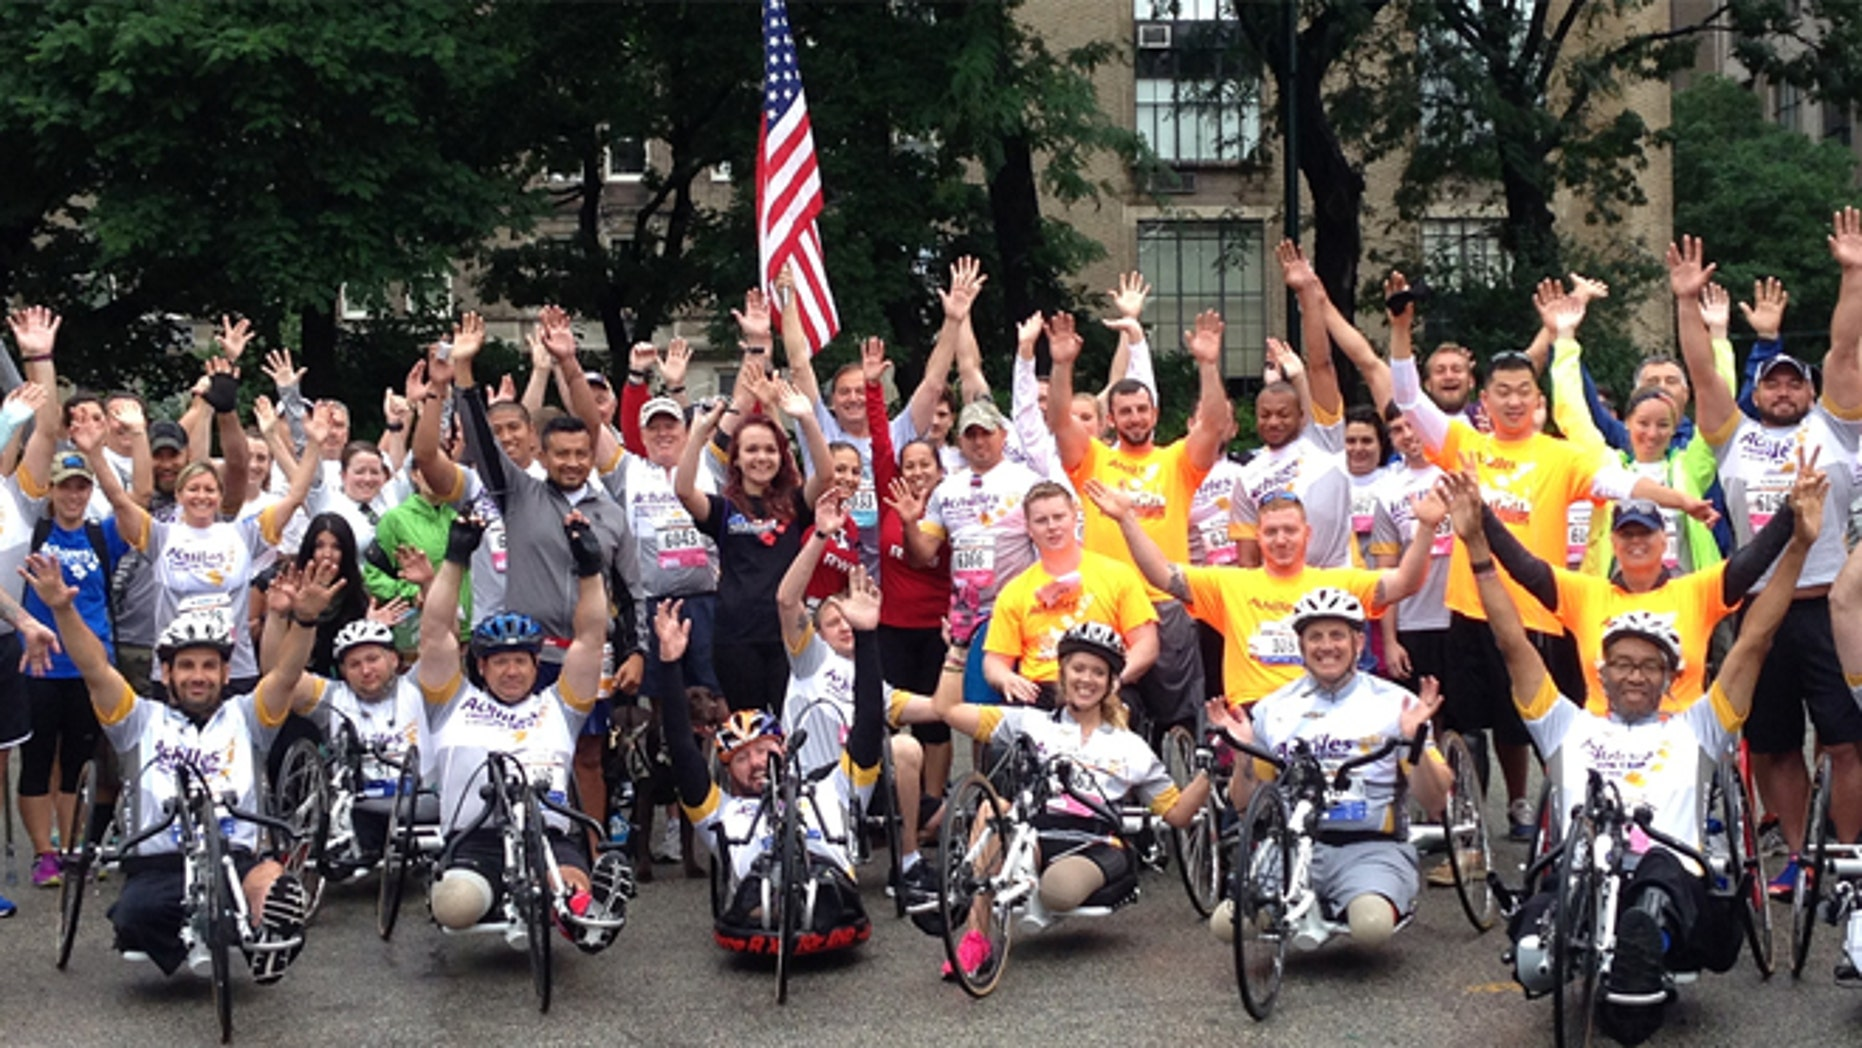 Shown here are veterans working with Achilles International, which trains disabled vets to compete in marathons. (Courtesy of Achilles International)